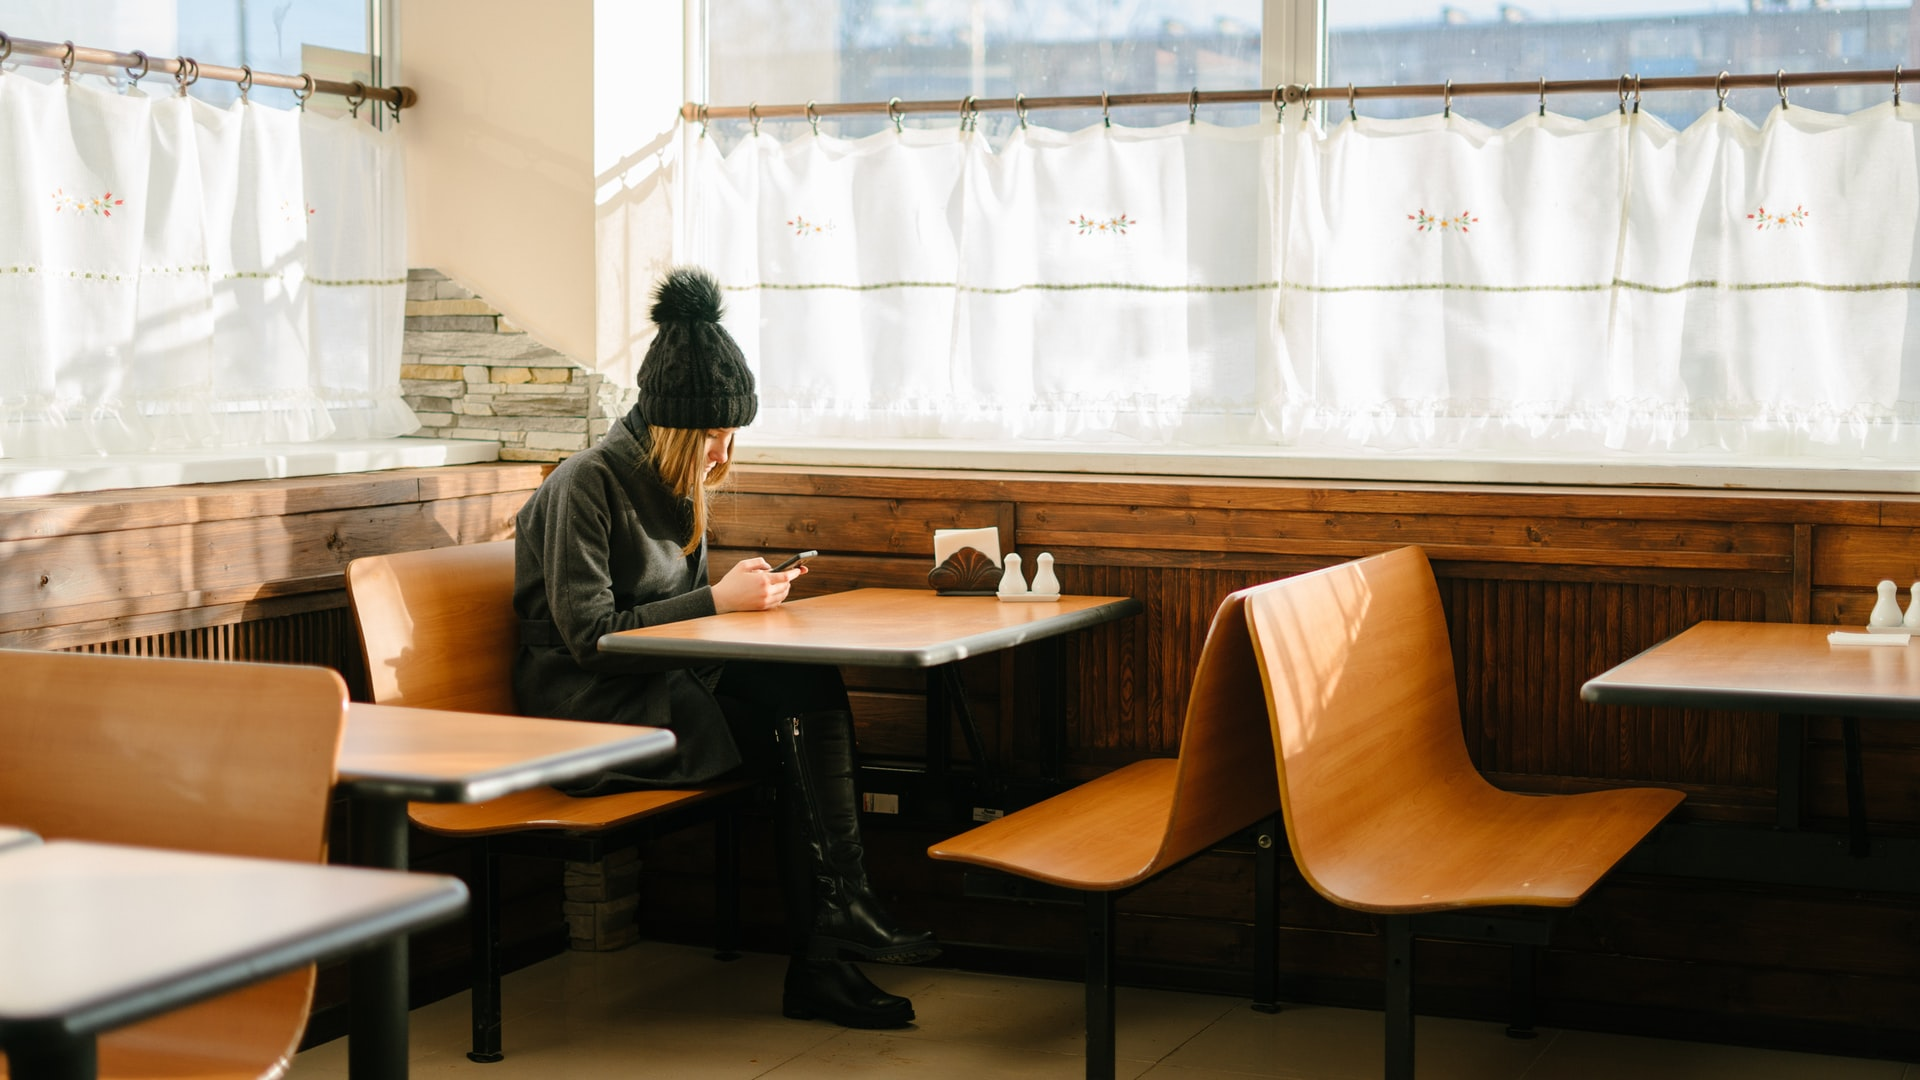 Woman alone at diner